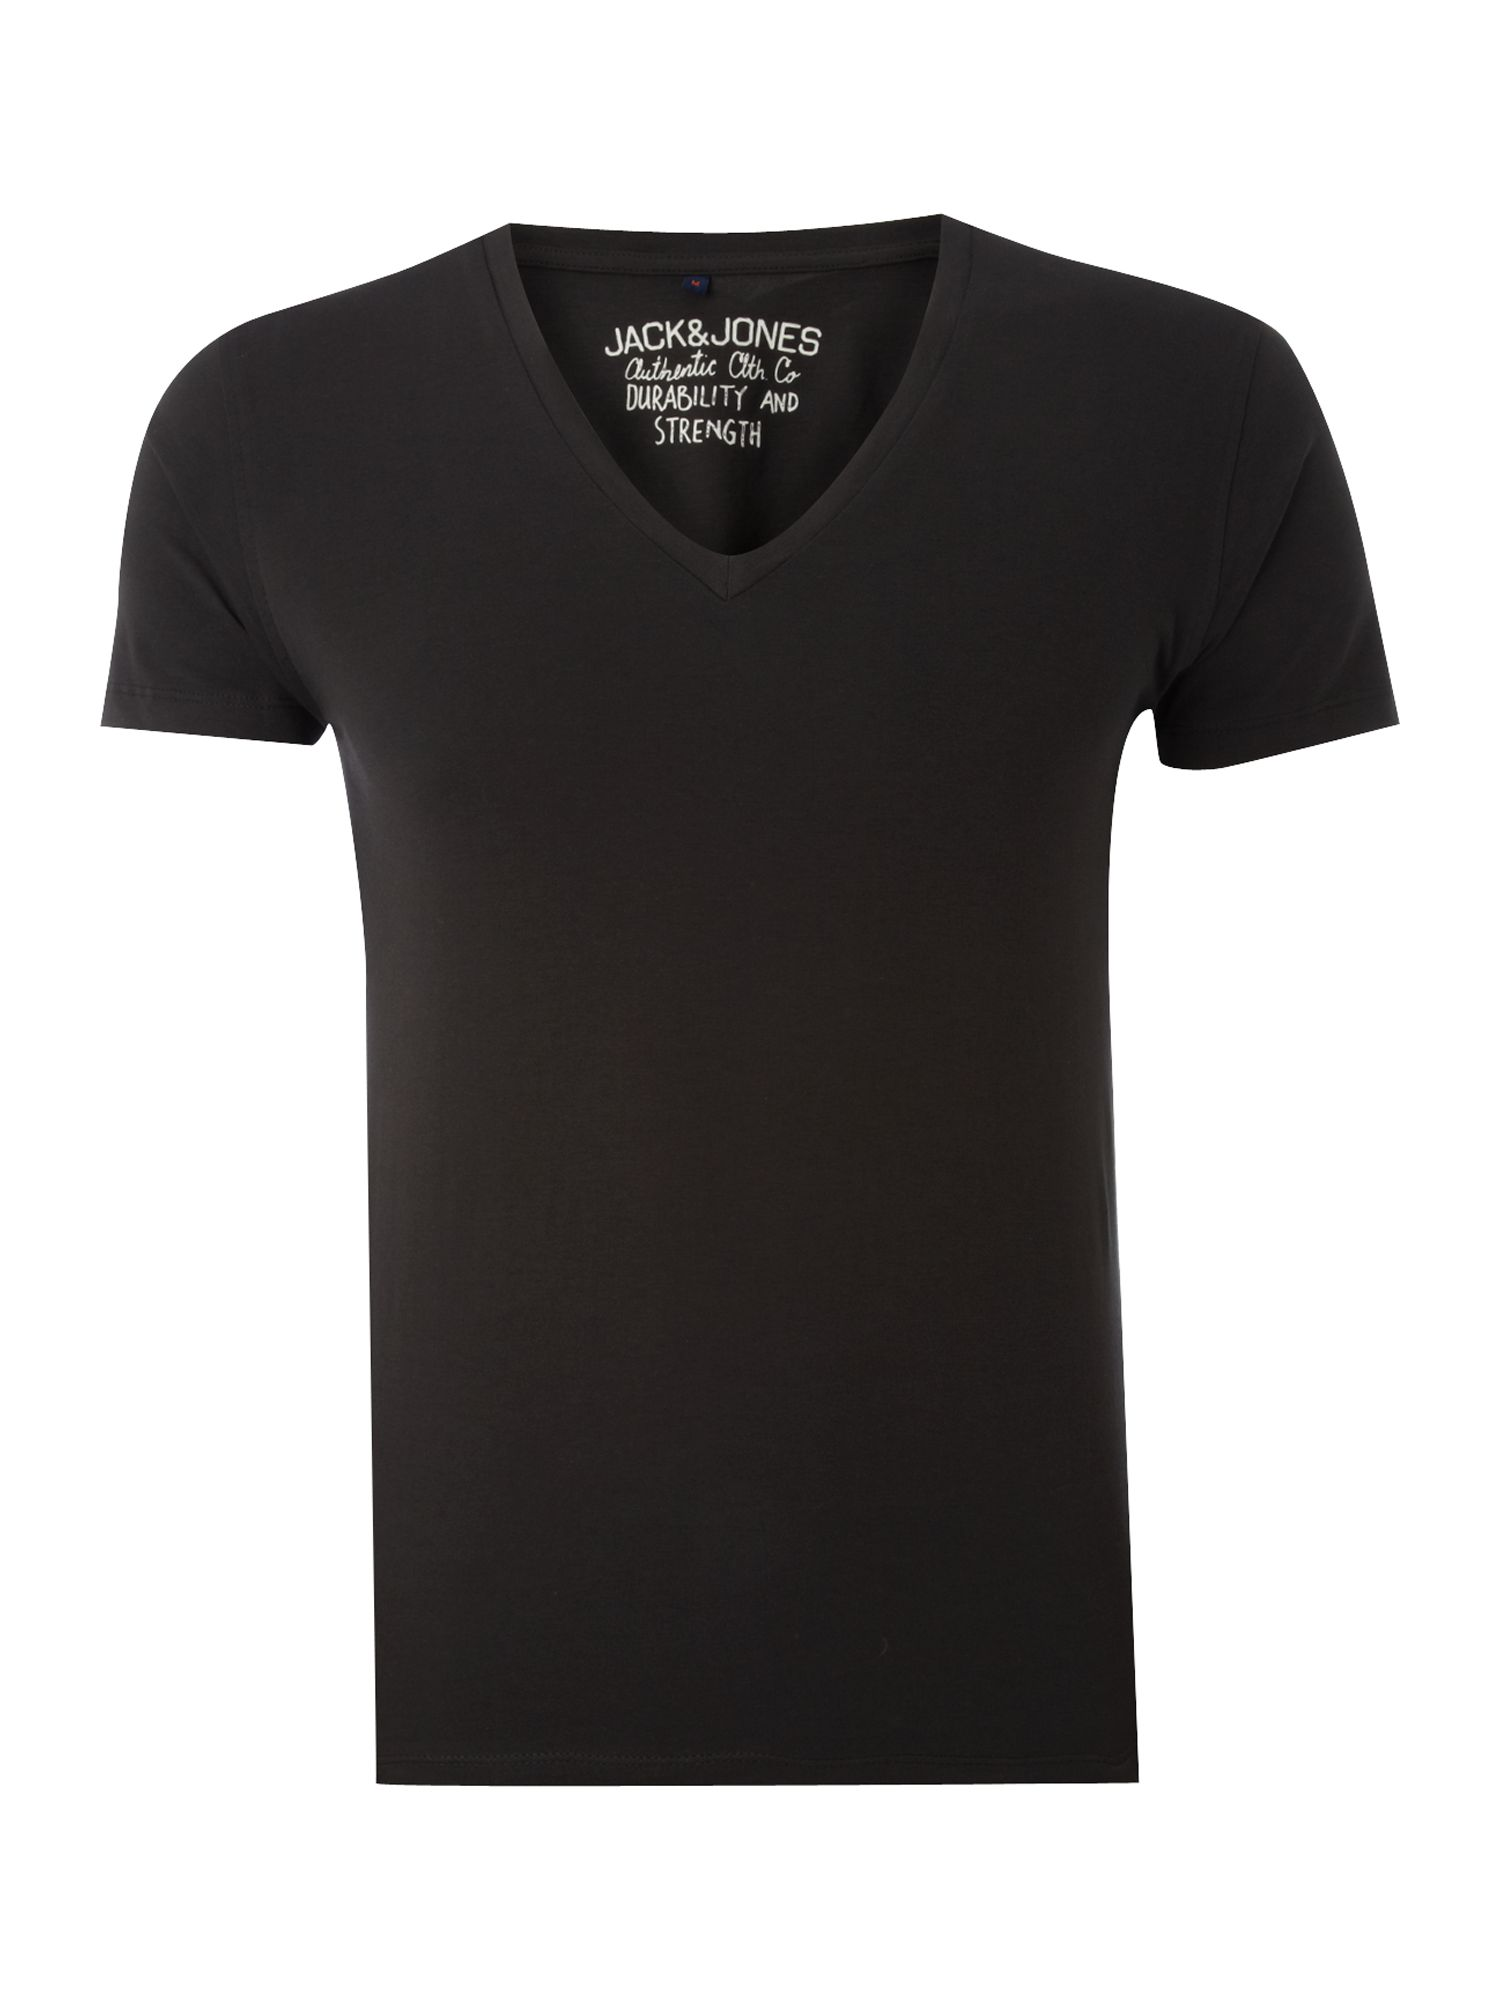 Short-sleeved plain v-neck t-shirt